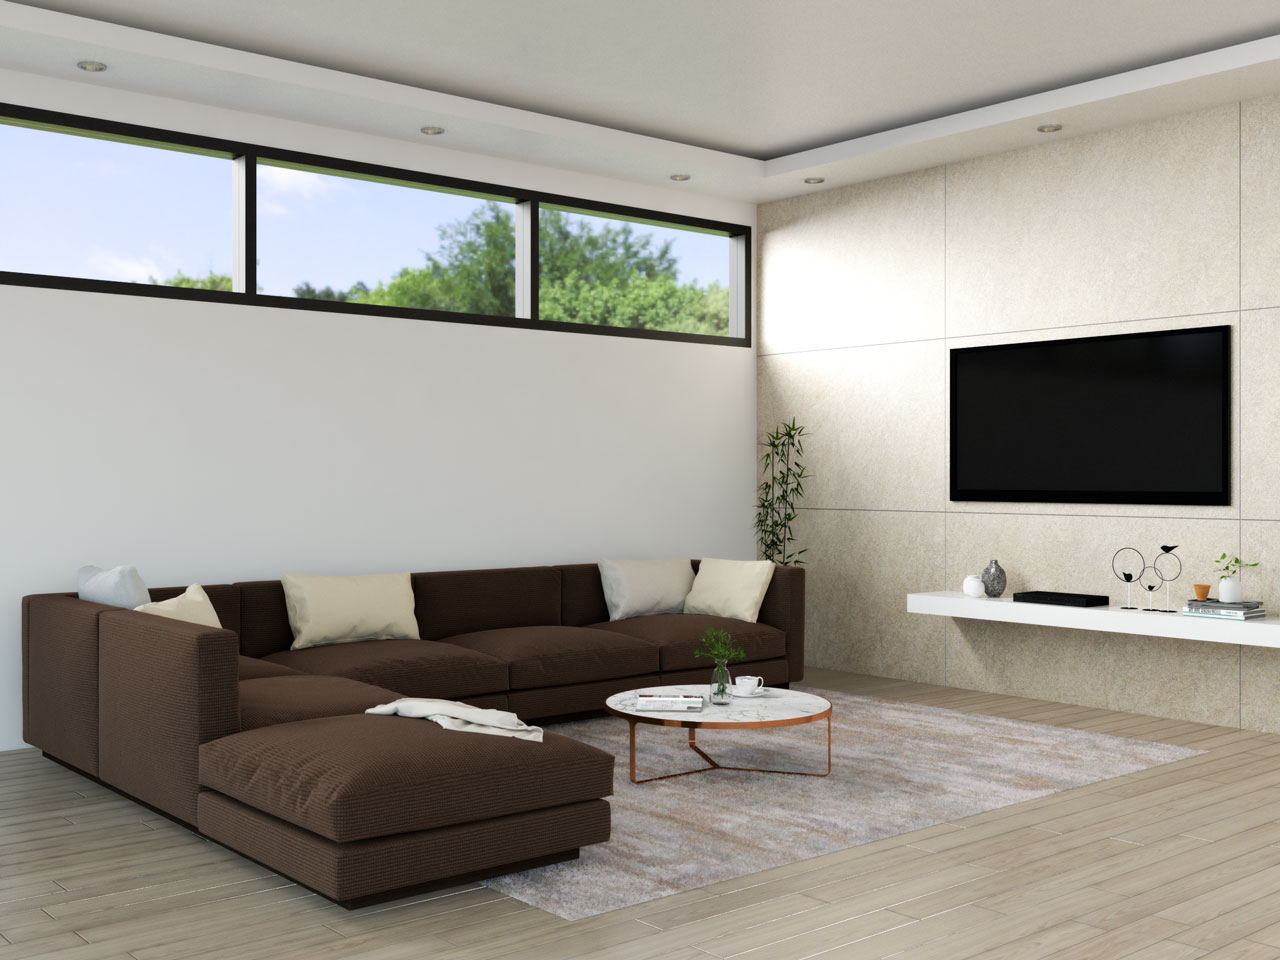 Living room with brown sofa and cream accent